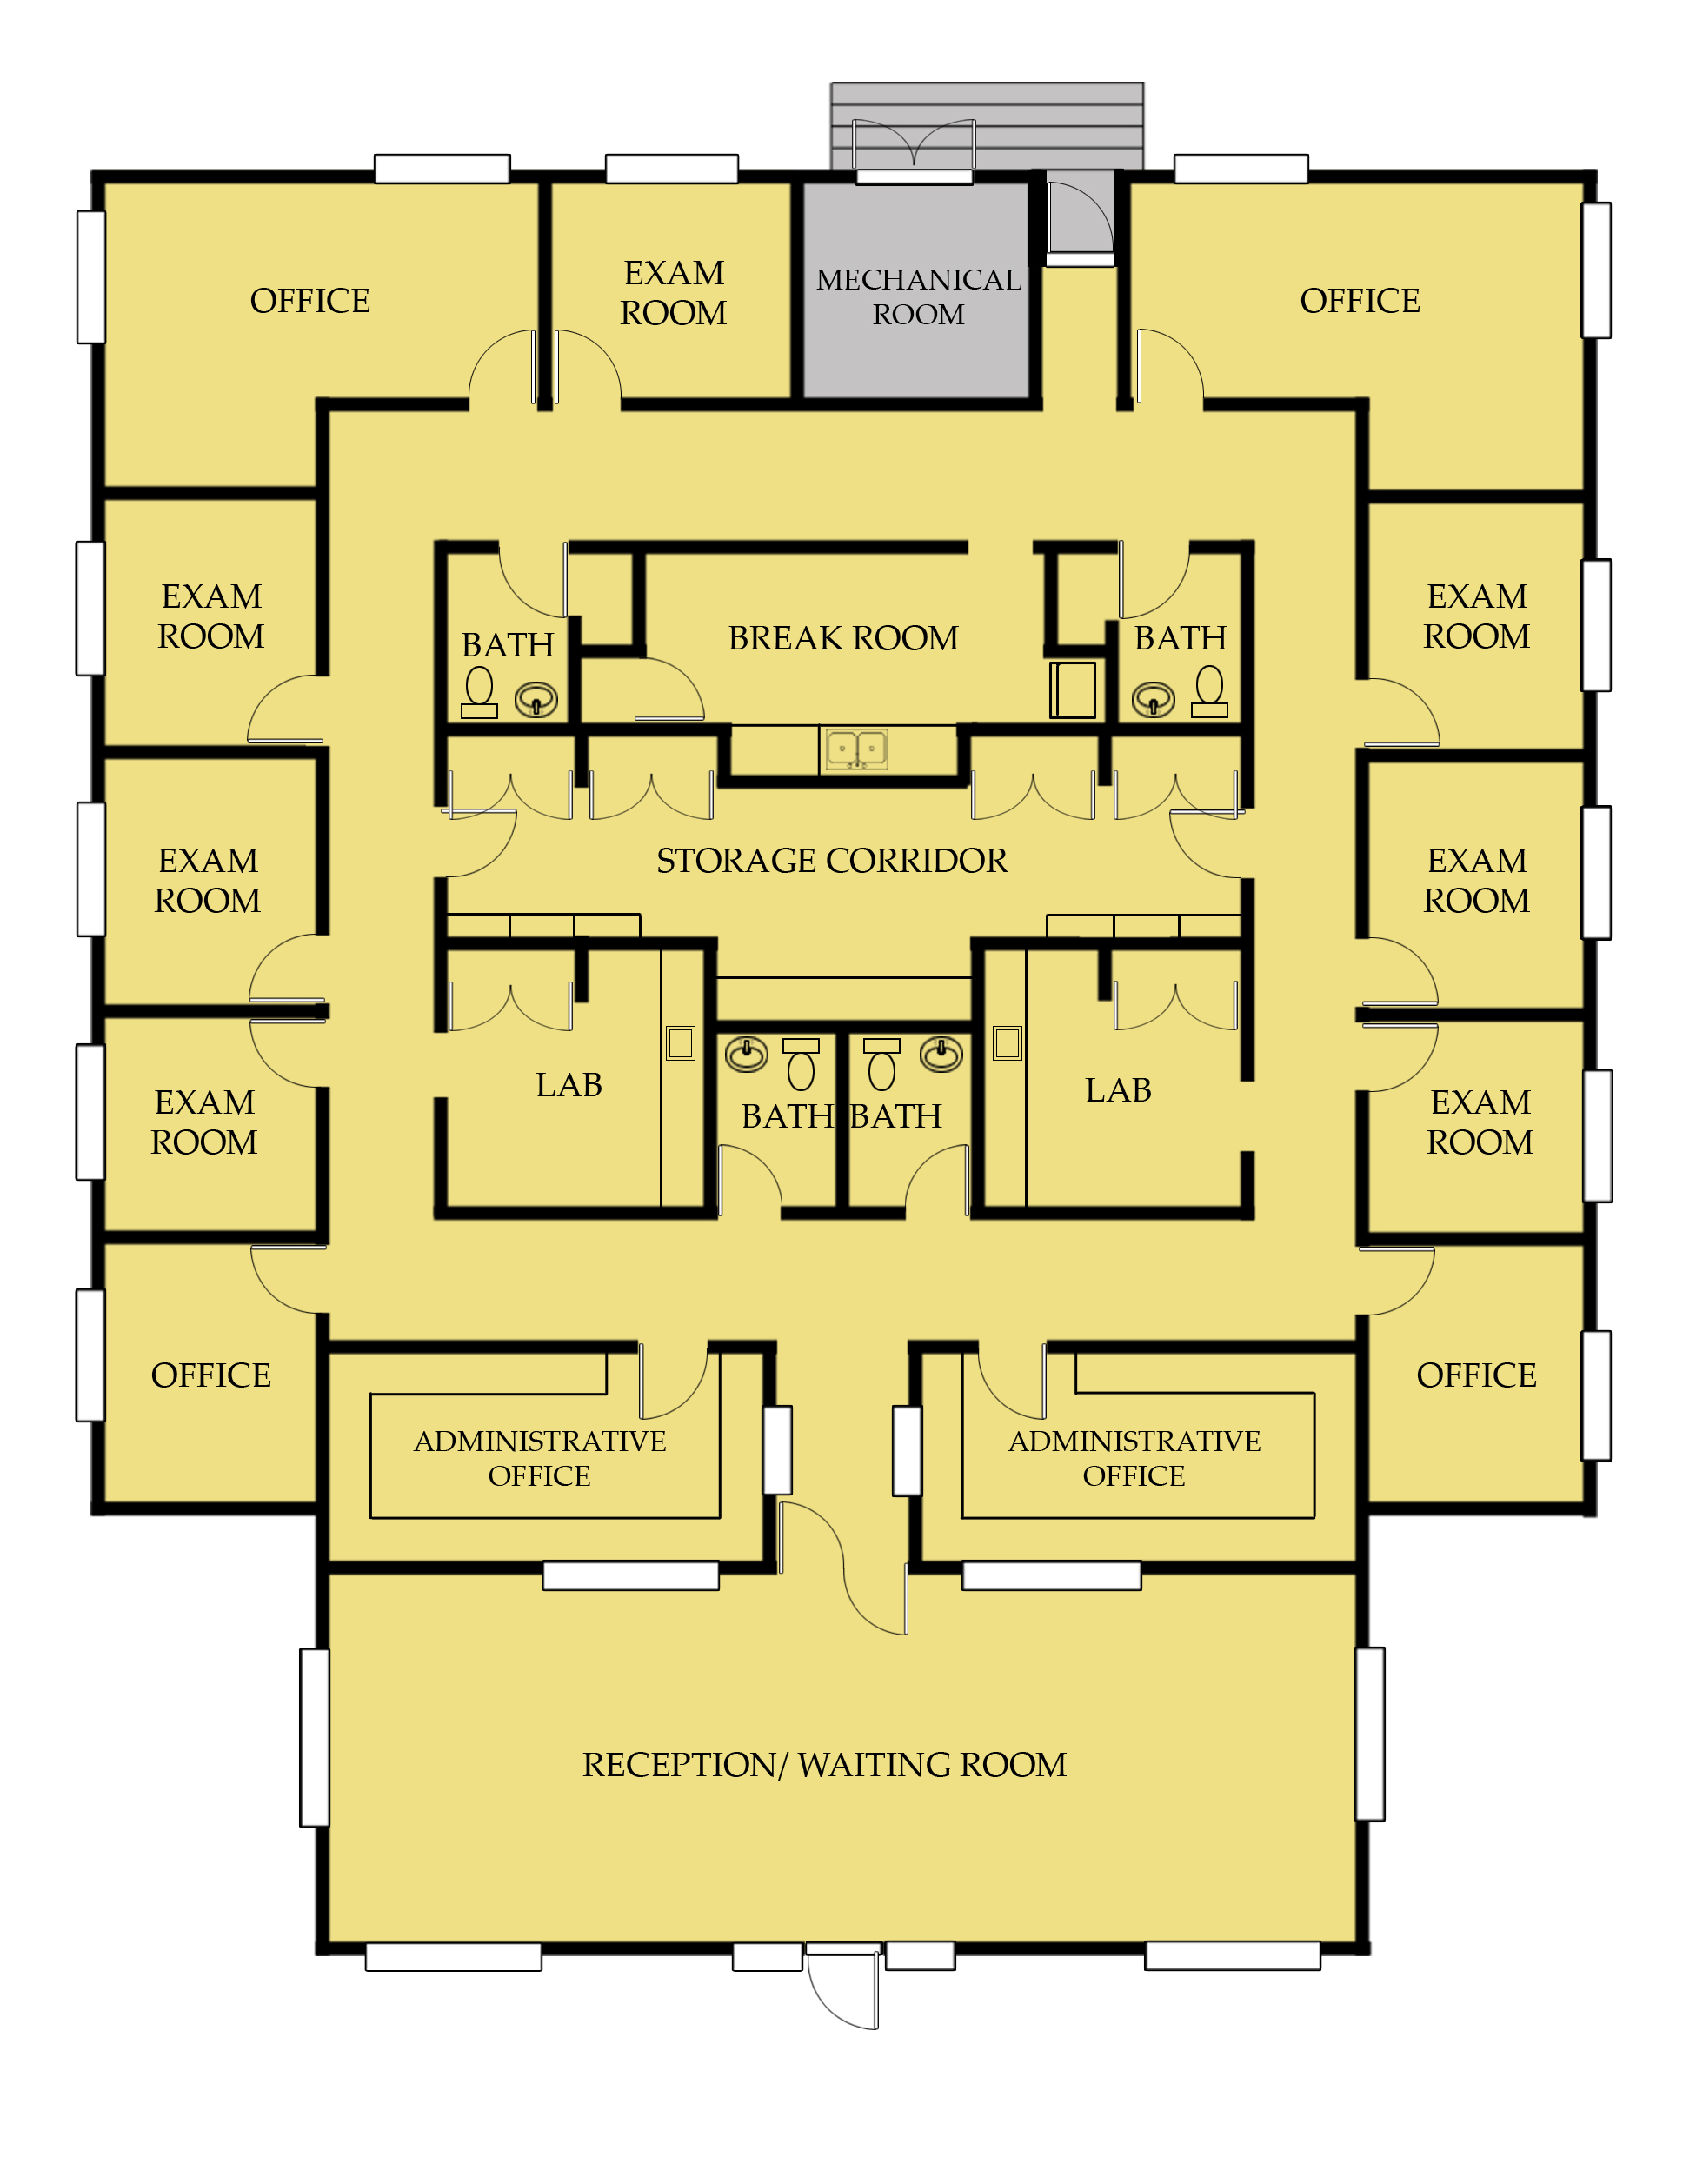 Medical Office Floor Plans on doctor office floor plans